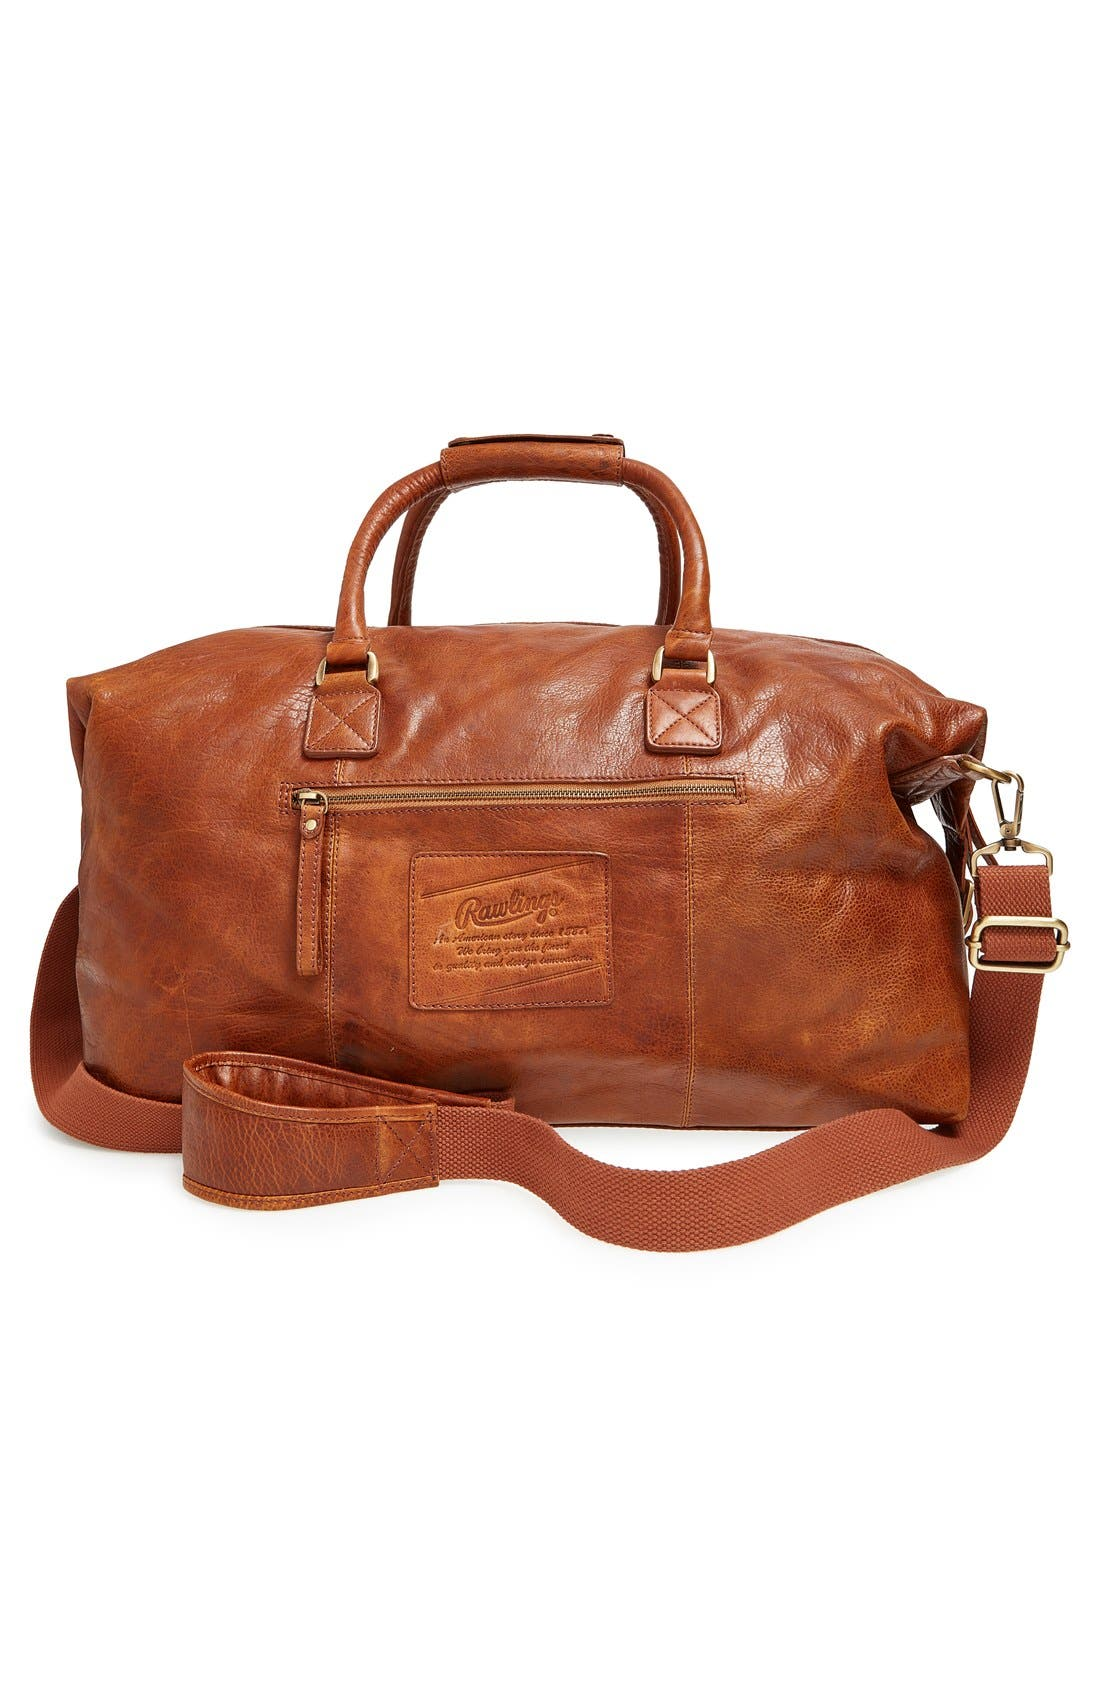 'Rugged' Leather Duffel Bag,                             Alternate thumbnail 3, color,                             Cognac